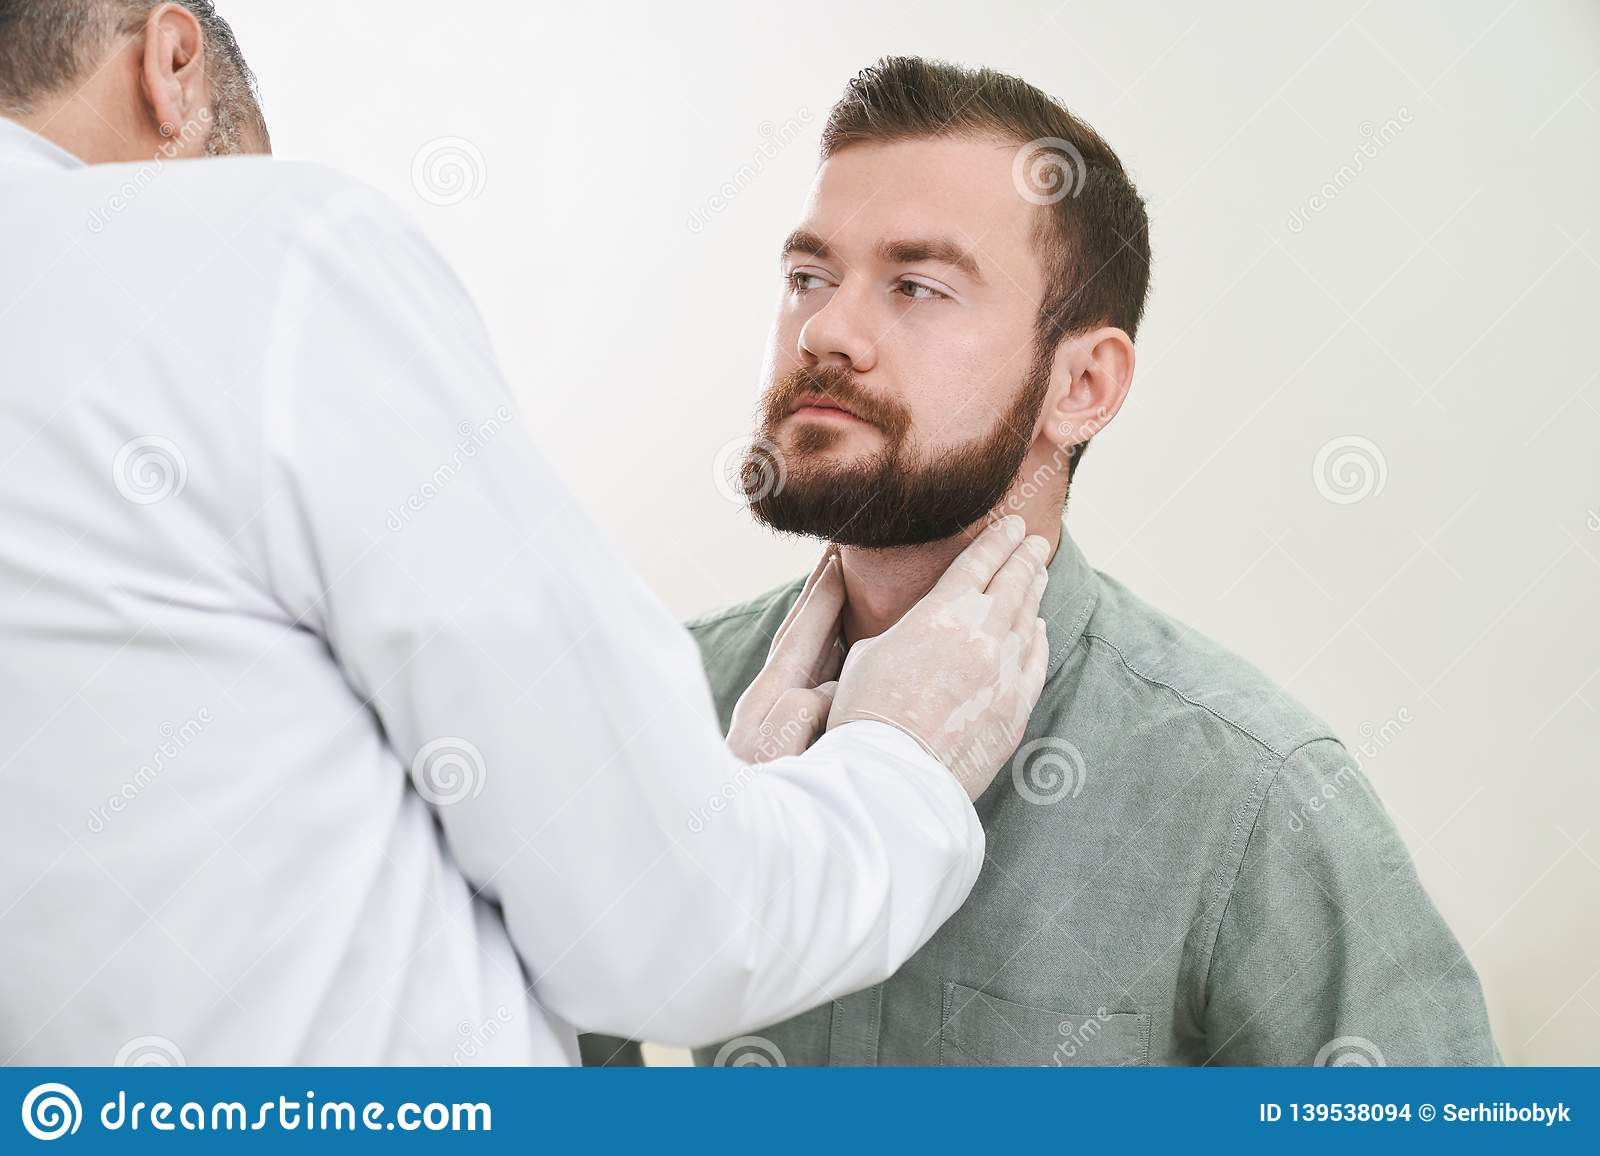 Bearded handsome man having neck and lymph nodes checked.